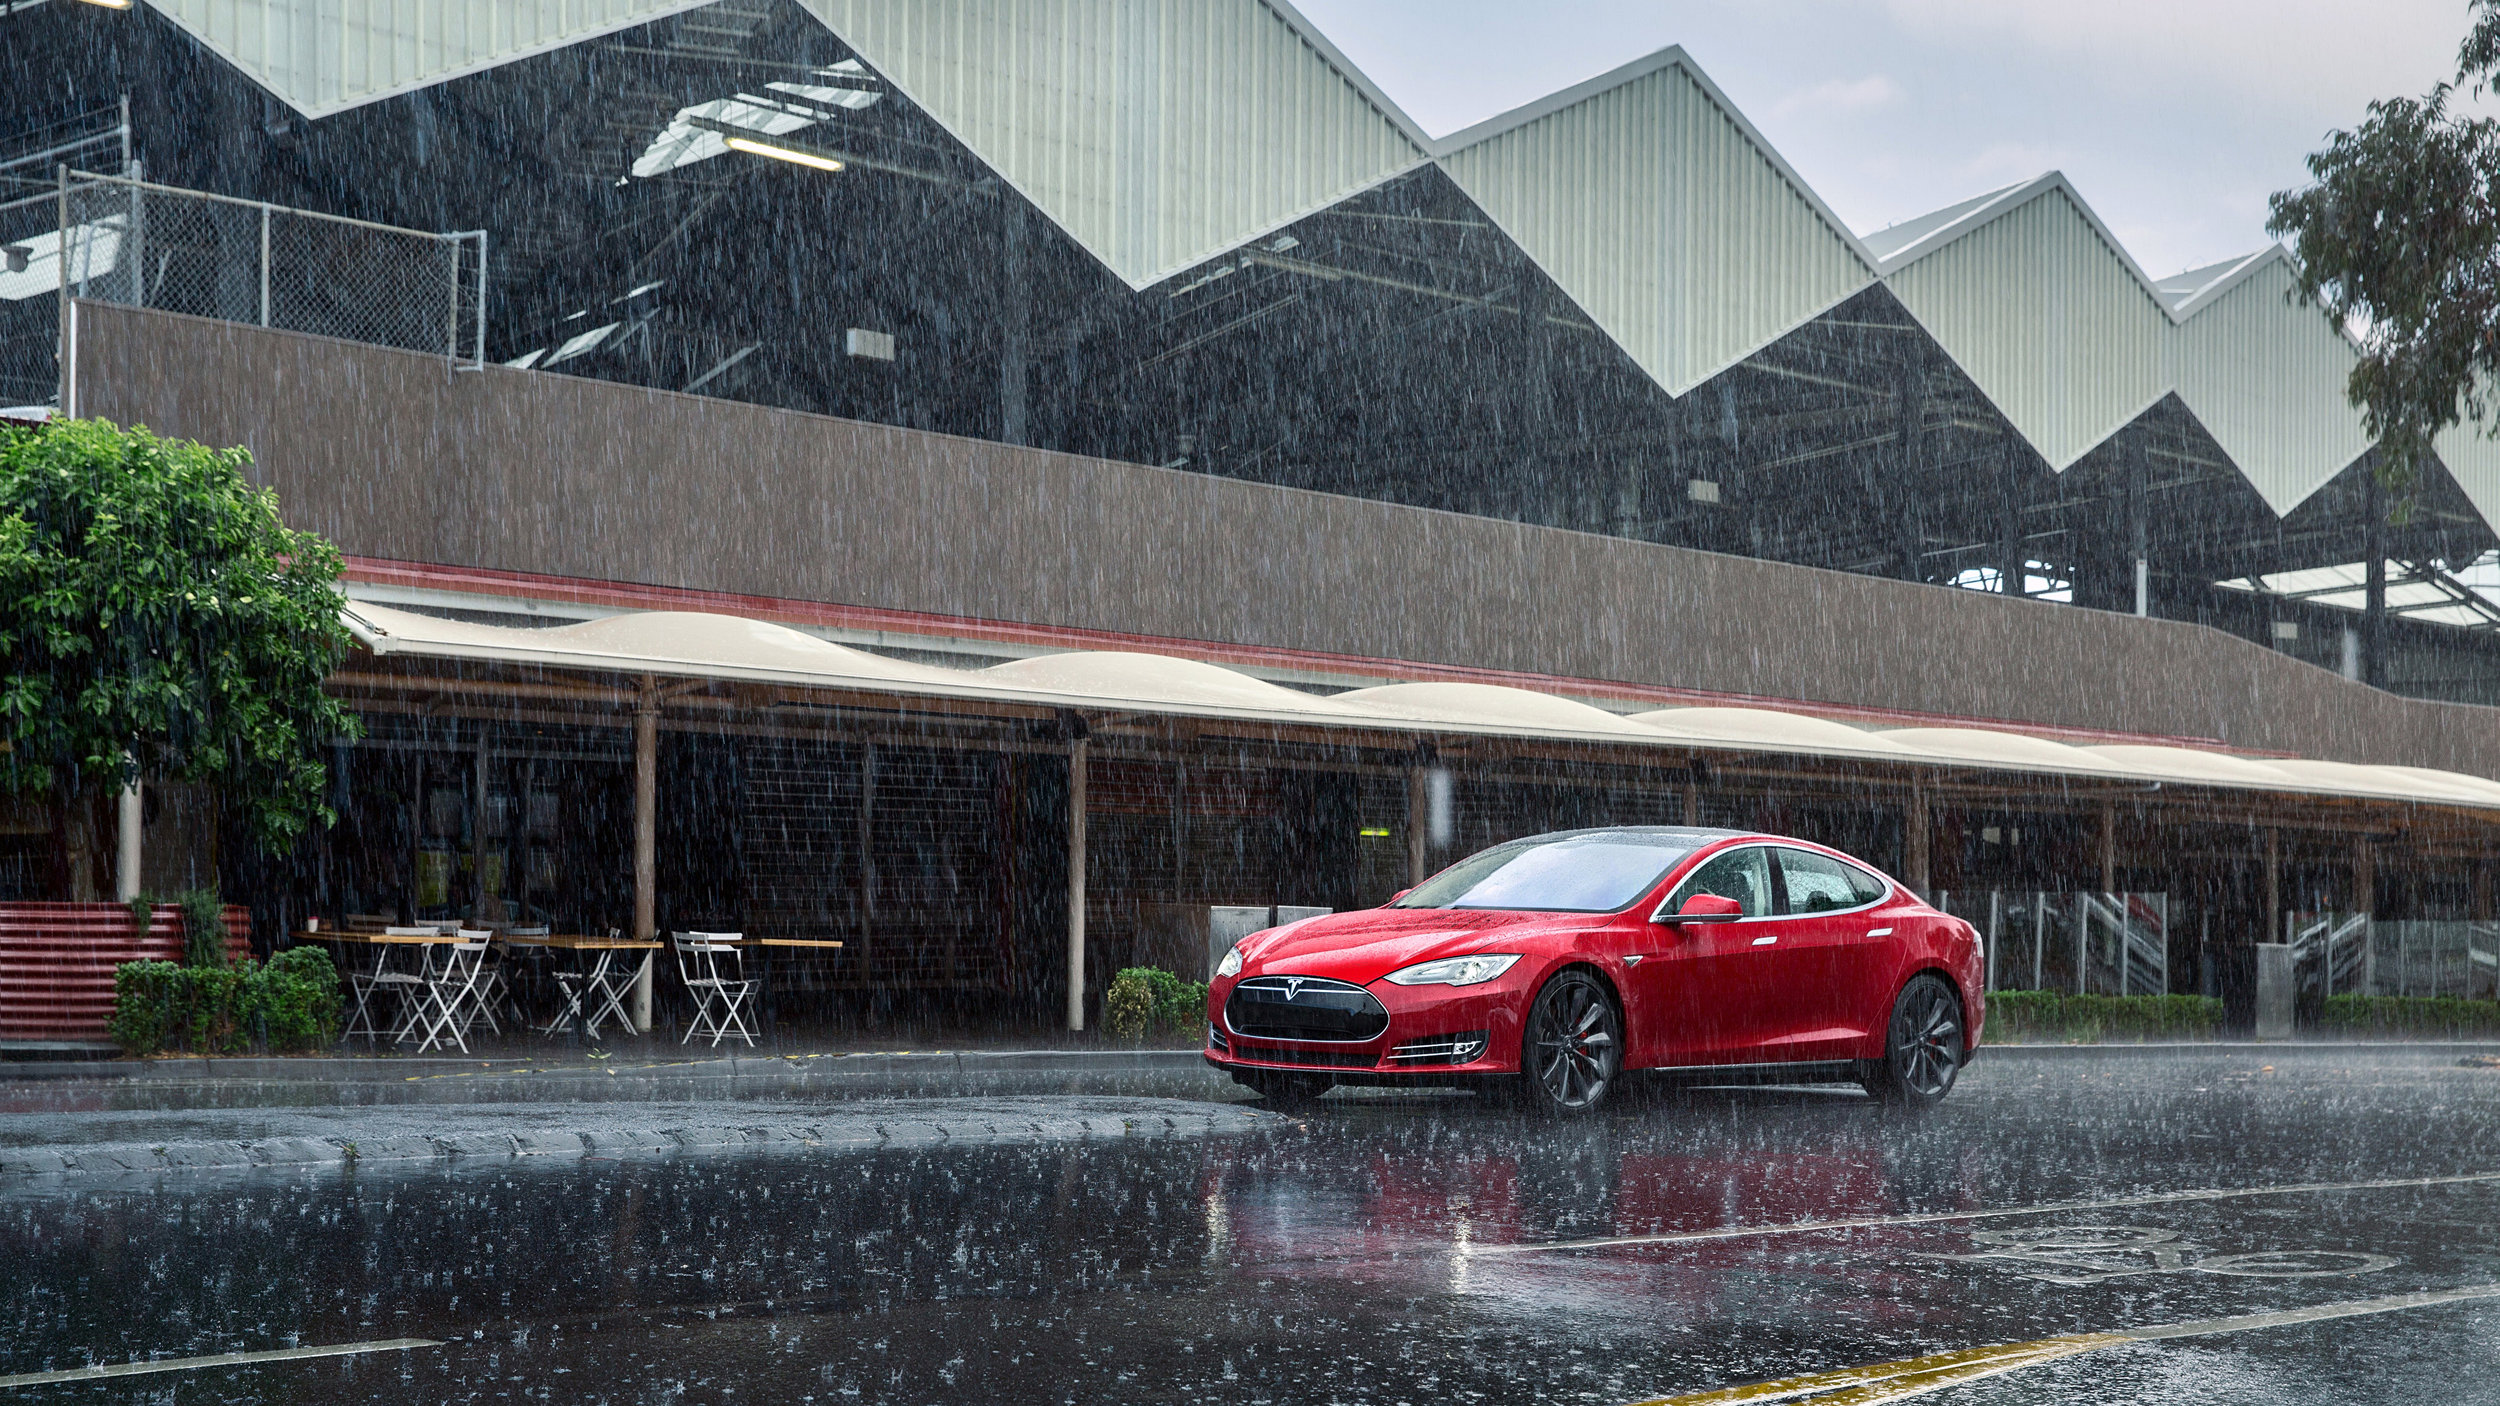 Tesla in the rain 1.jpg